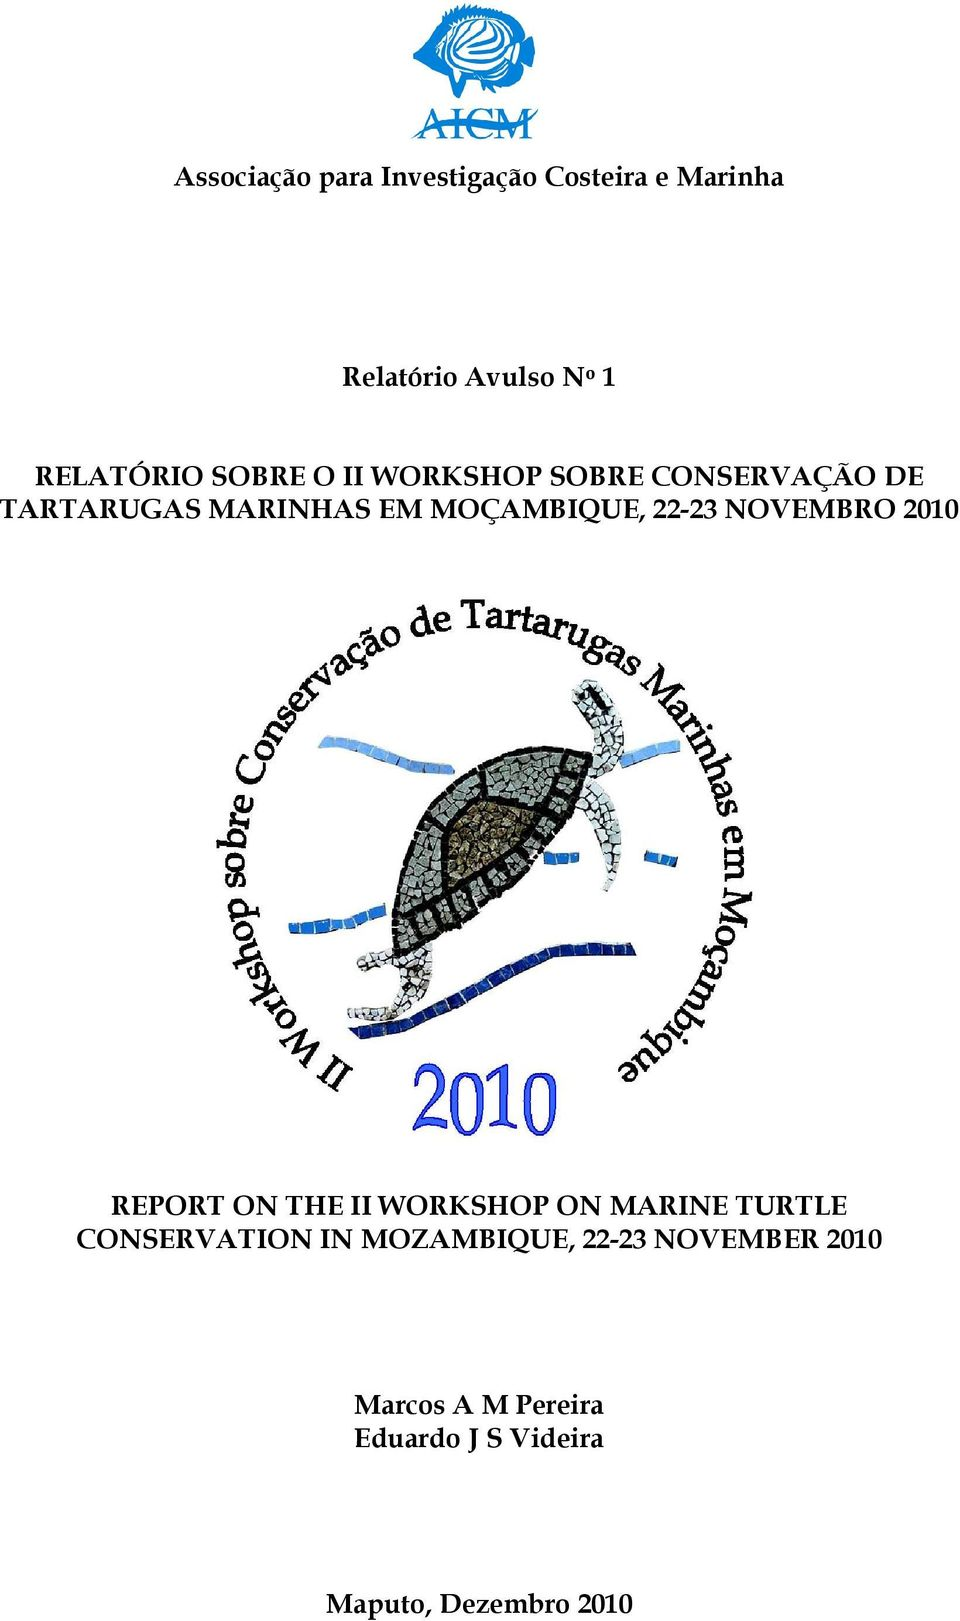 NOVEMBRO 2010 REPORT ON THE II WORKSHOP ON MARINE TURTLE CONSERVATION IN